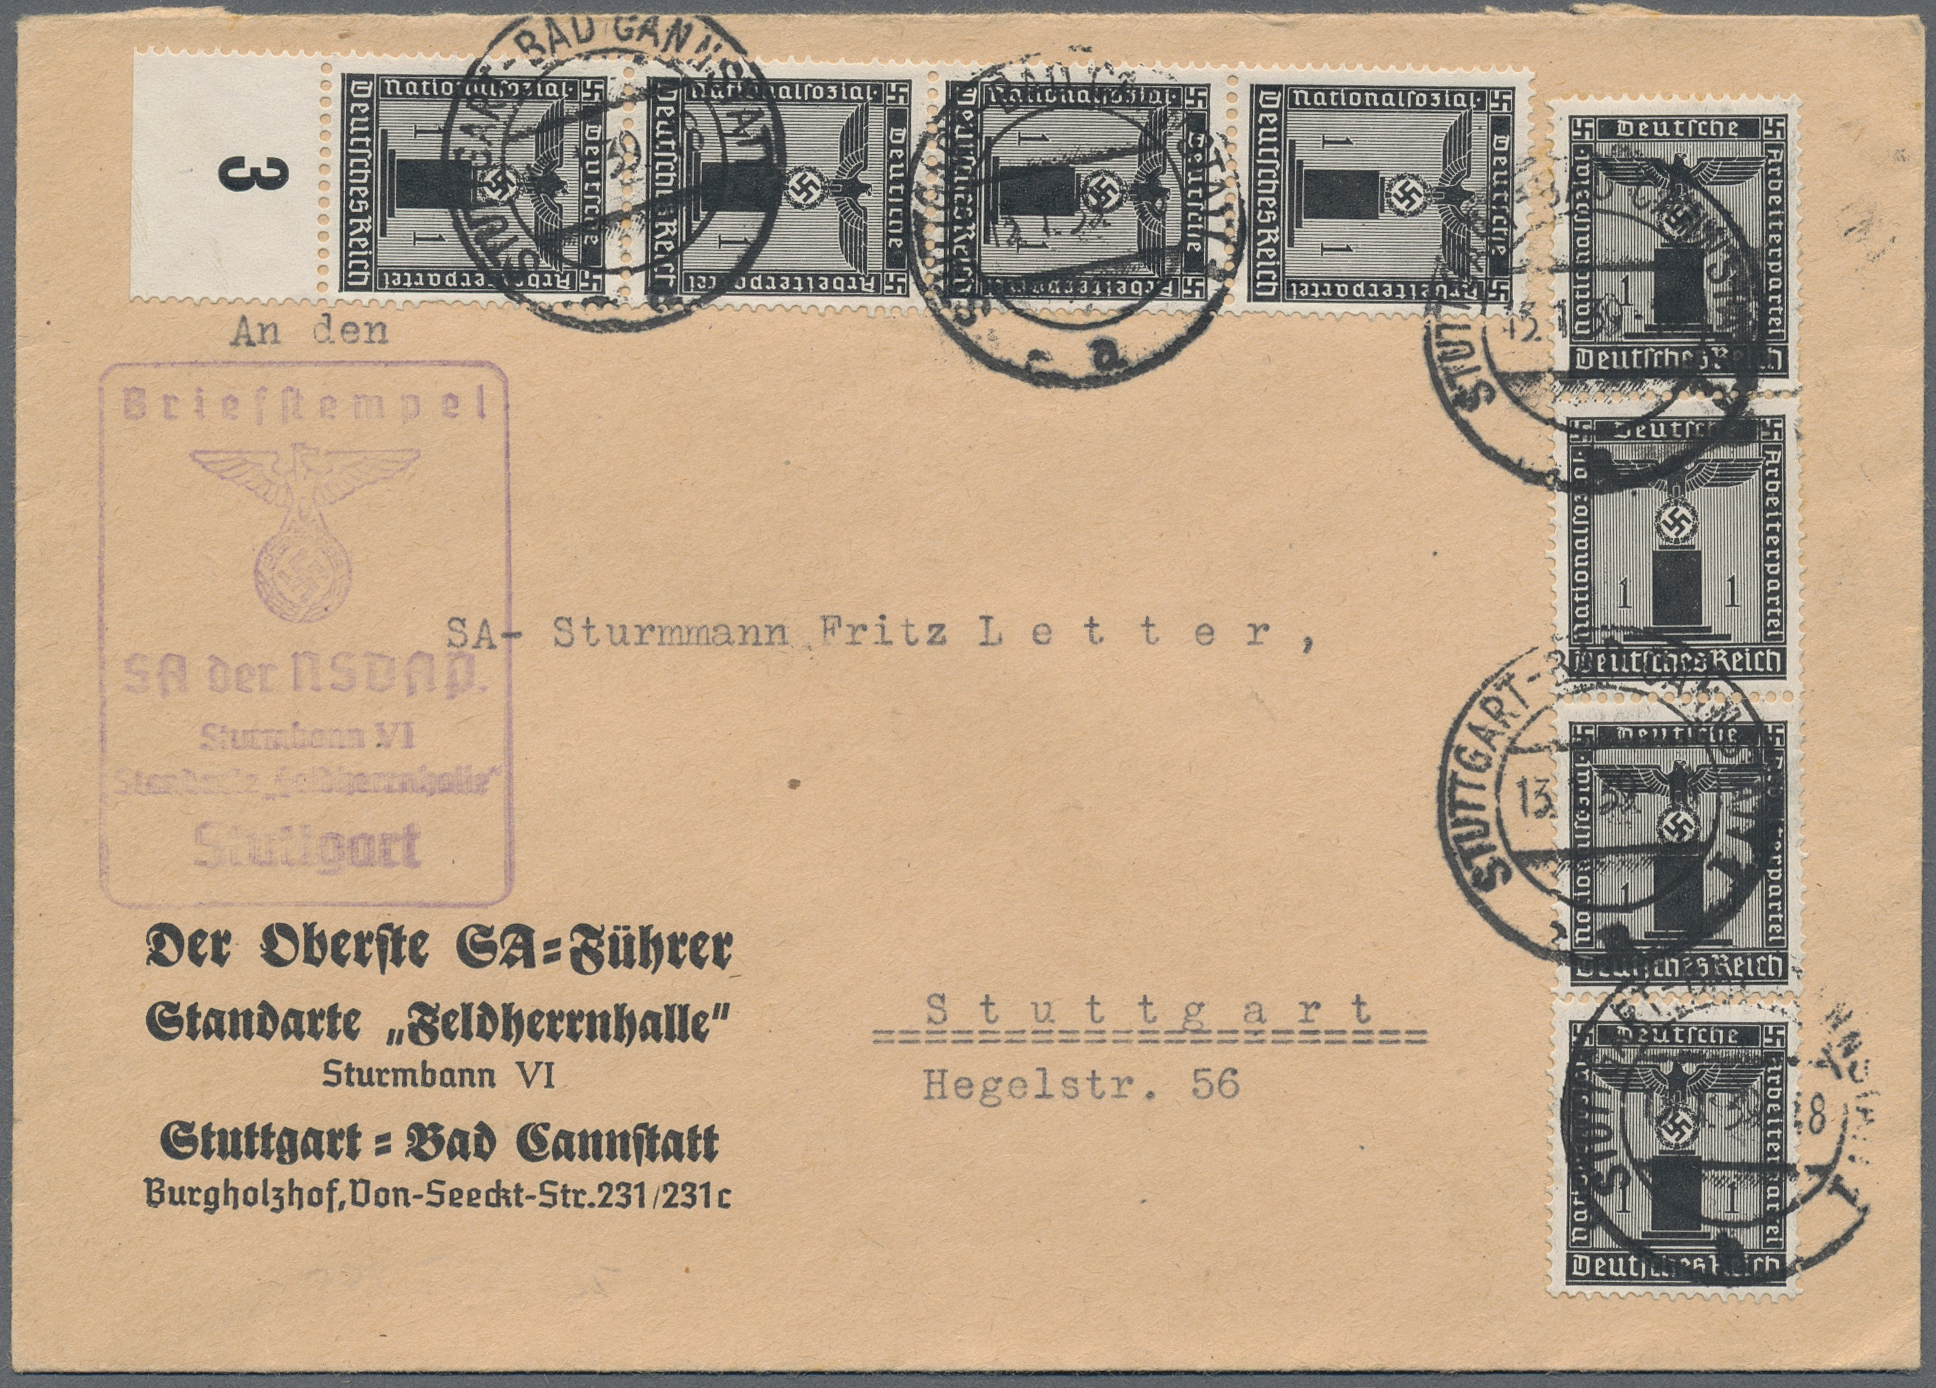 Lot 37055 - Deutsches Reich - Dienstmarken  -  Auktionshaus Christoph Gärtner GmbH & Co. KG Collections Germany,  Collections Supplement, Surprise boxes #39 Day 7